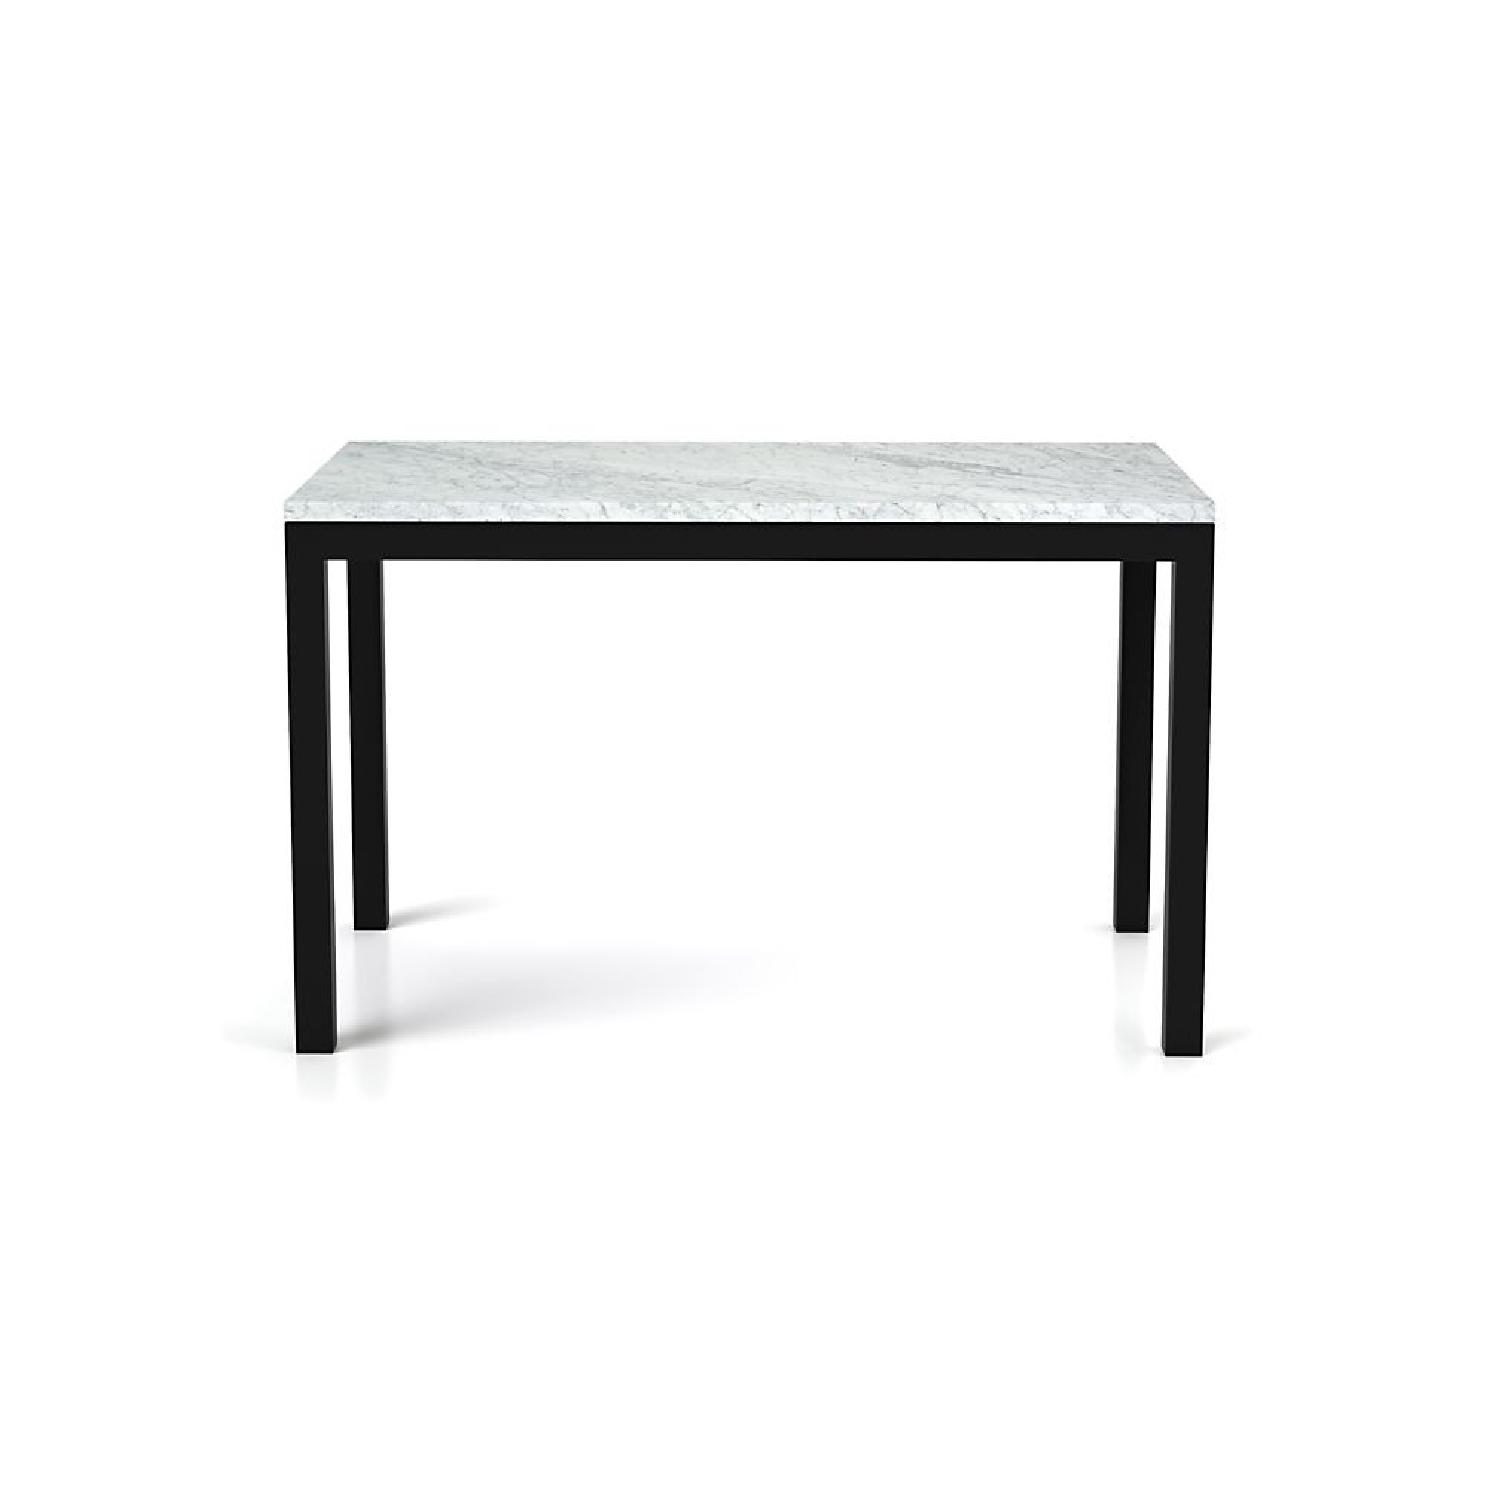 Crate & Barrel Carrara Marble High-Top Table w/ Steel Legs - image-0